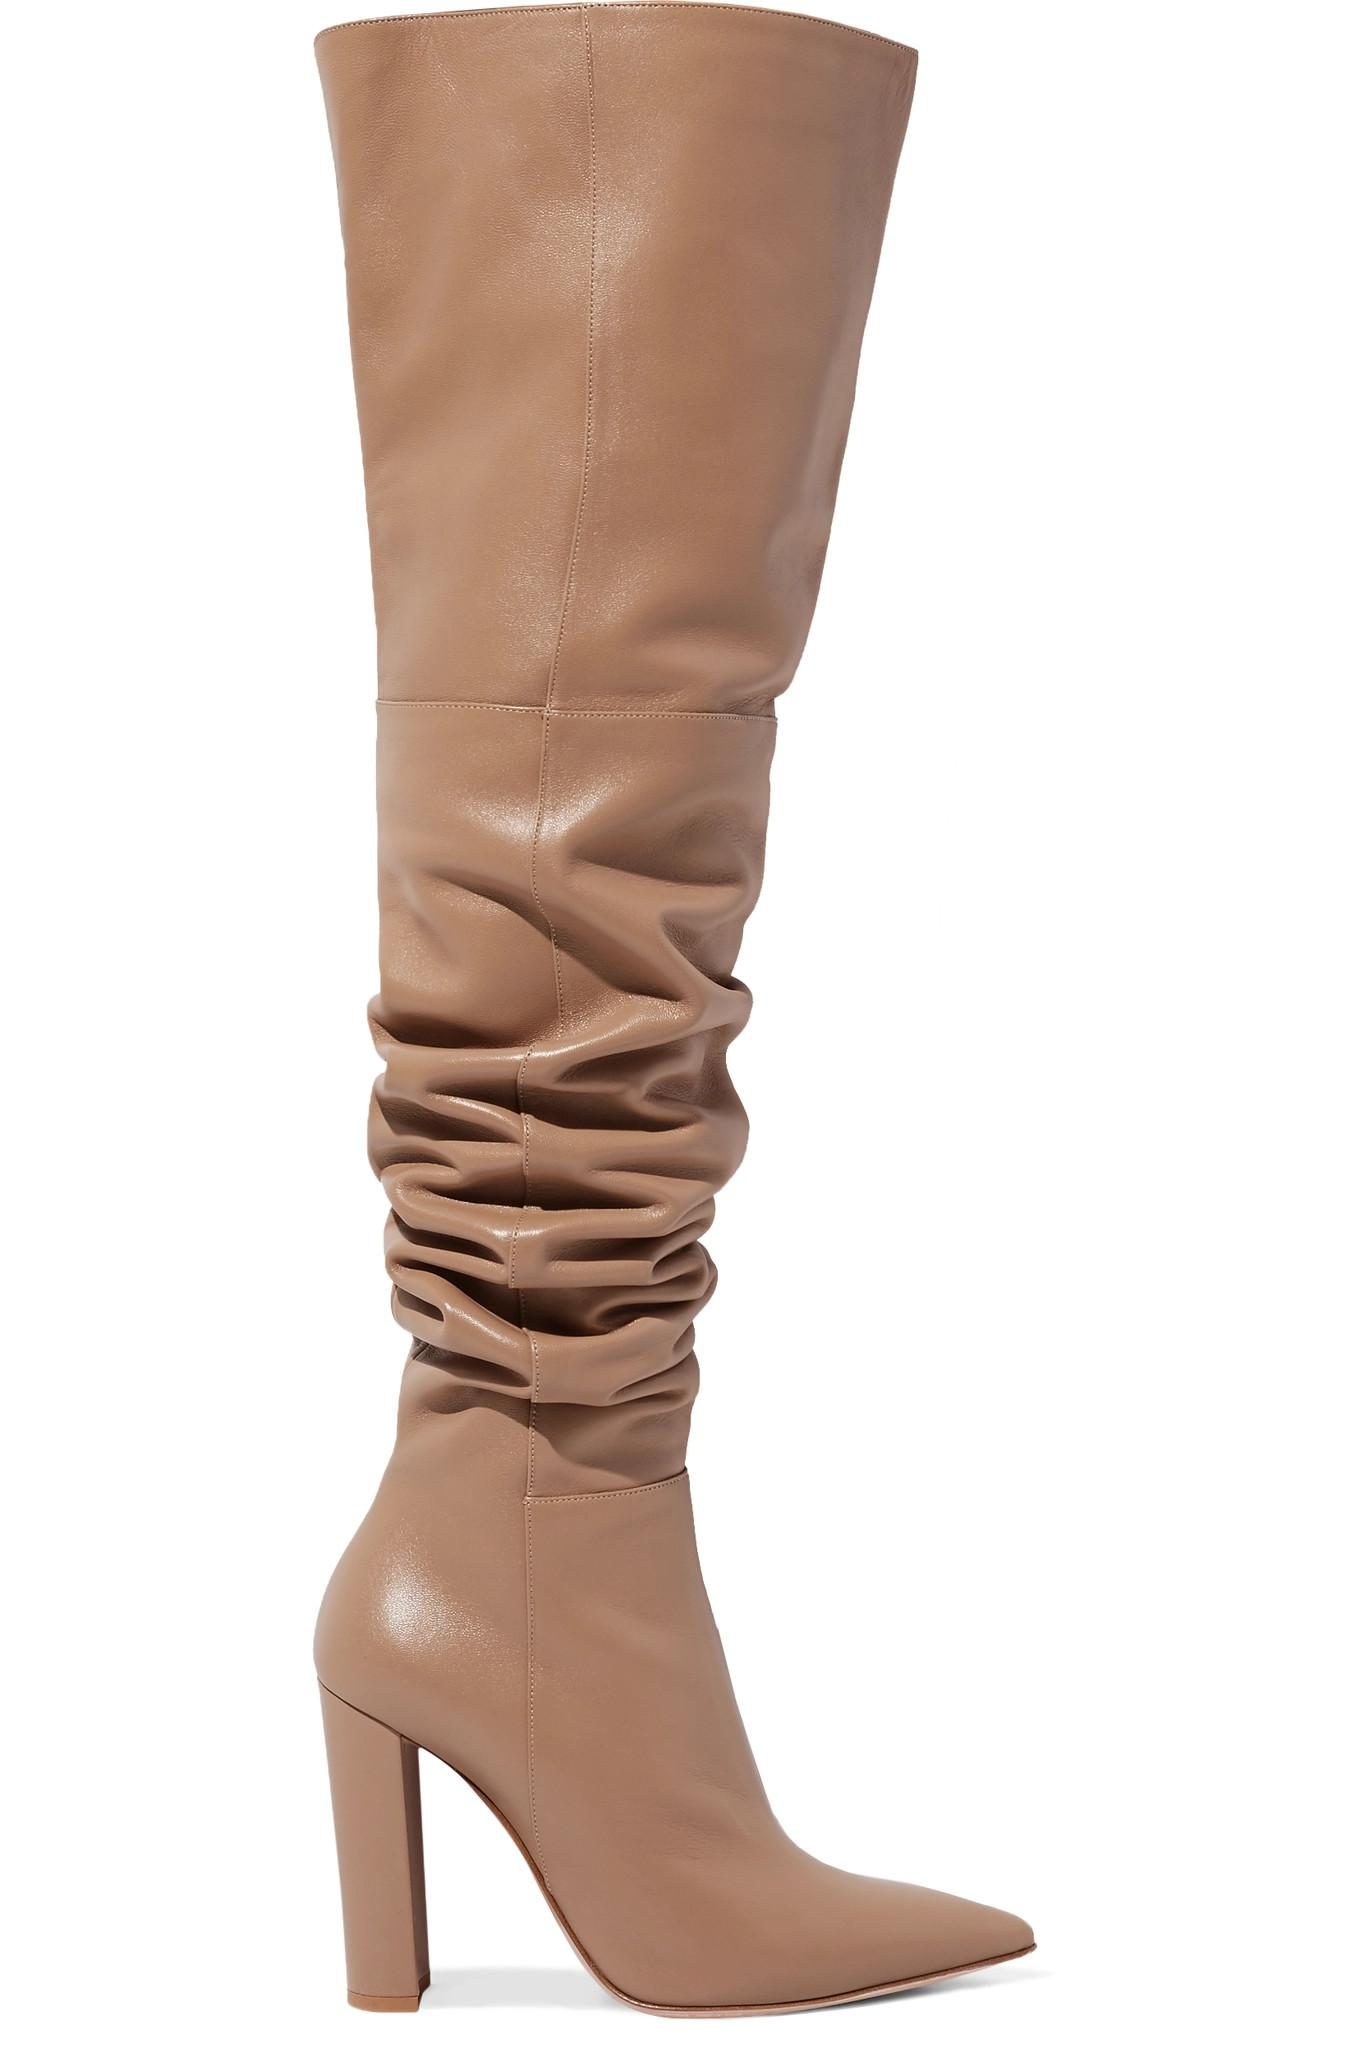 Le Meilleur Gianvito Rossi 100 Leather Over The Knee Boots Lyst Ce Mois Ci